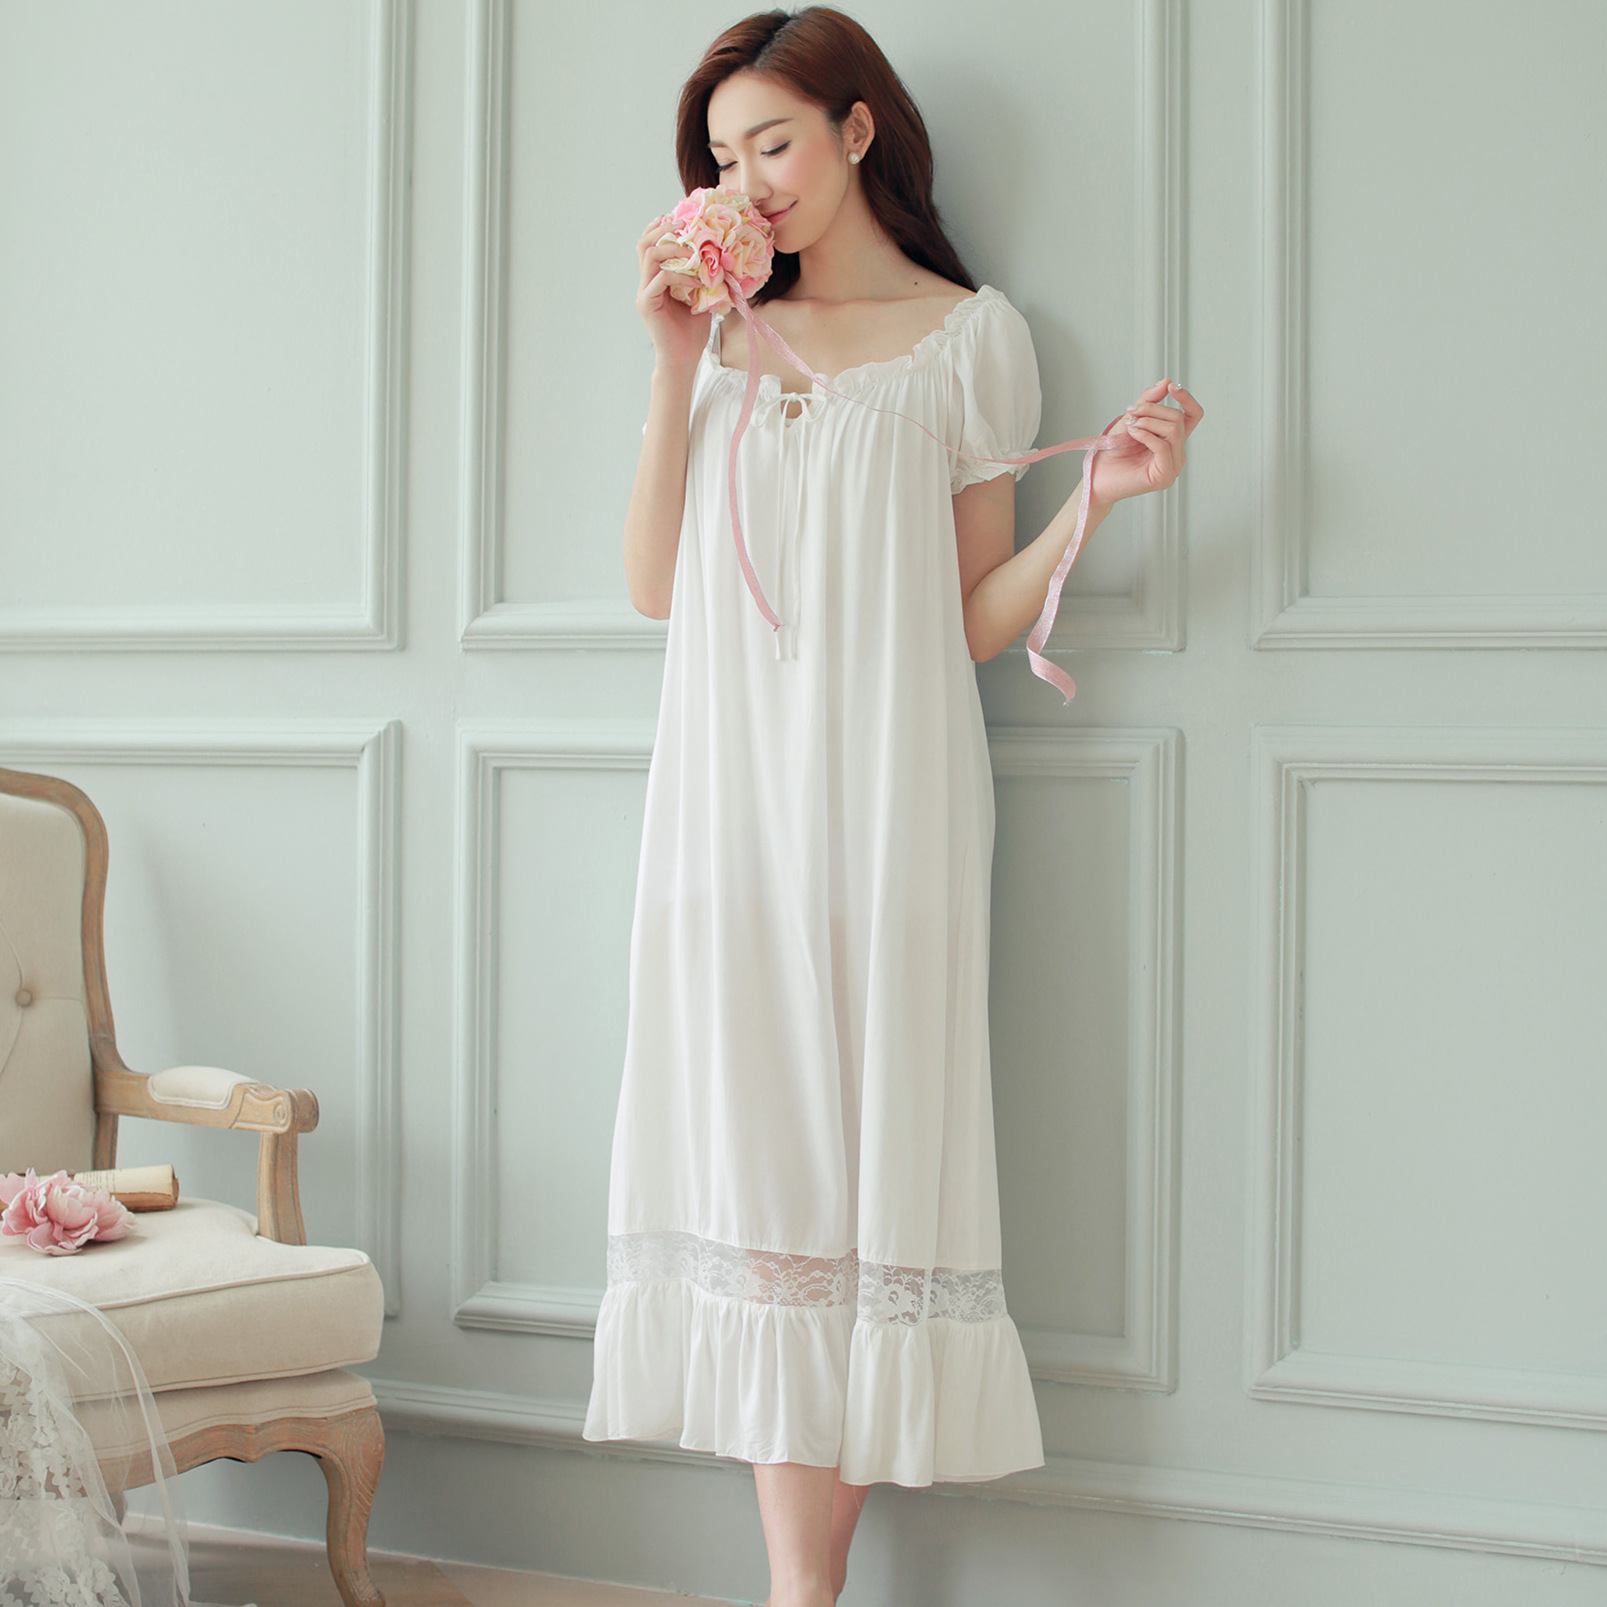 Online Shop Night dress long white nightgown Women Nightgowns Cotton Short  Sleeve sexy nightwear vestido vintage sleepwear pijama nightdress  7da44f12e9